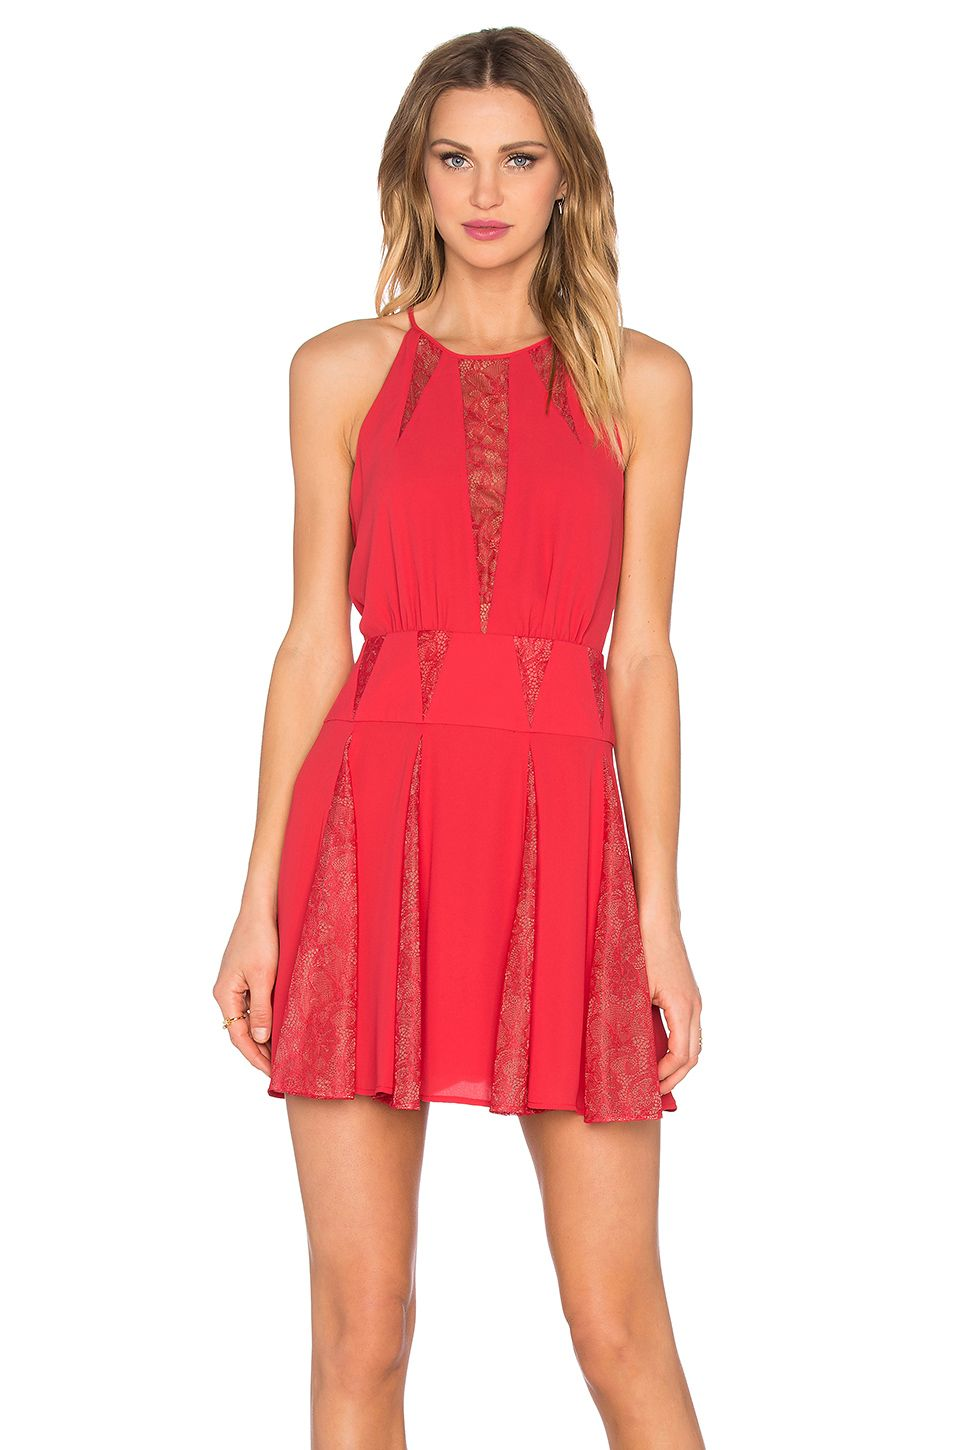 BCBGMAXAZRIA Teena Dress in Lipstick Red | Nothing to Wear and No ...